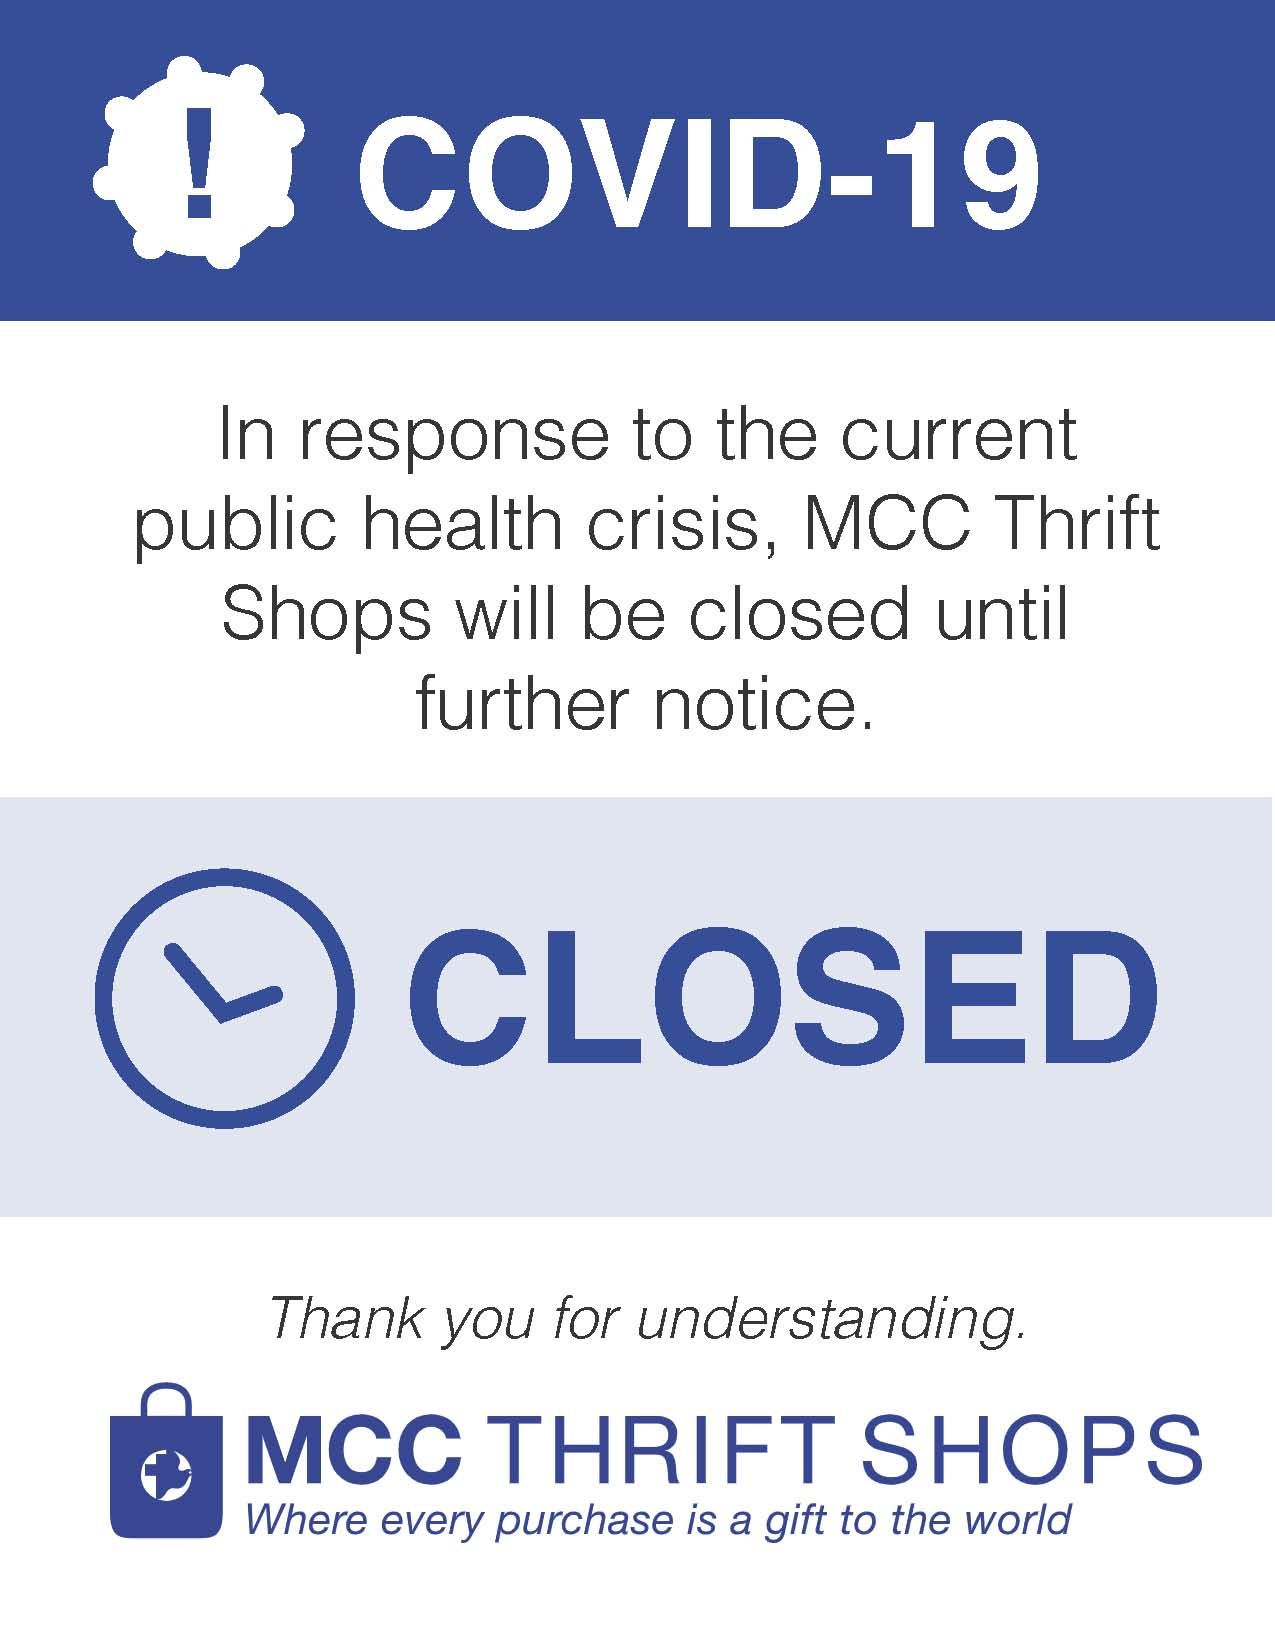 MB SHOPS COVID thrift closure hours 2020.3.17